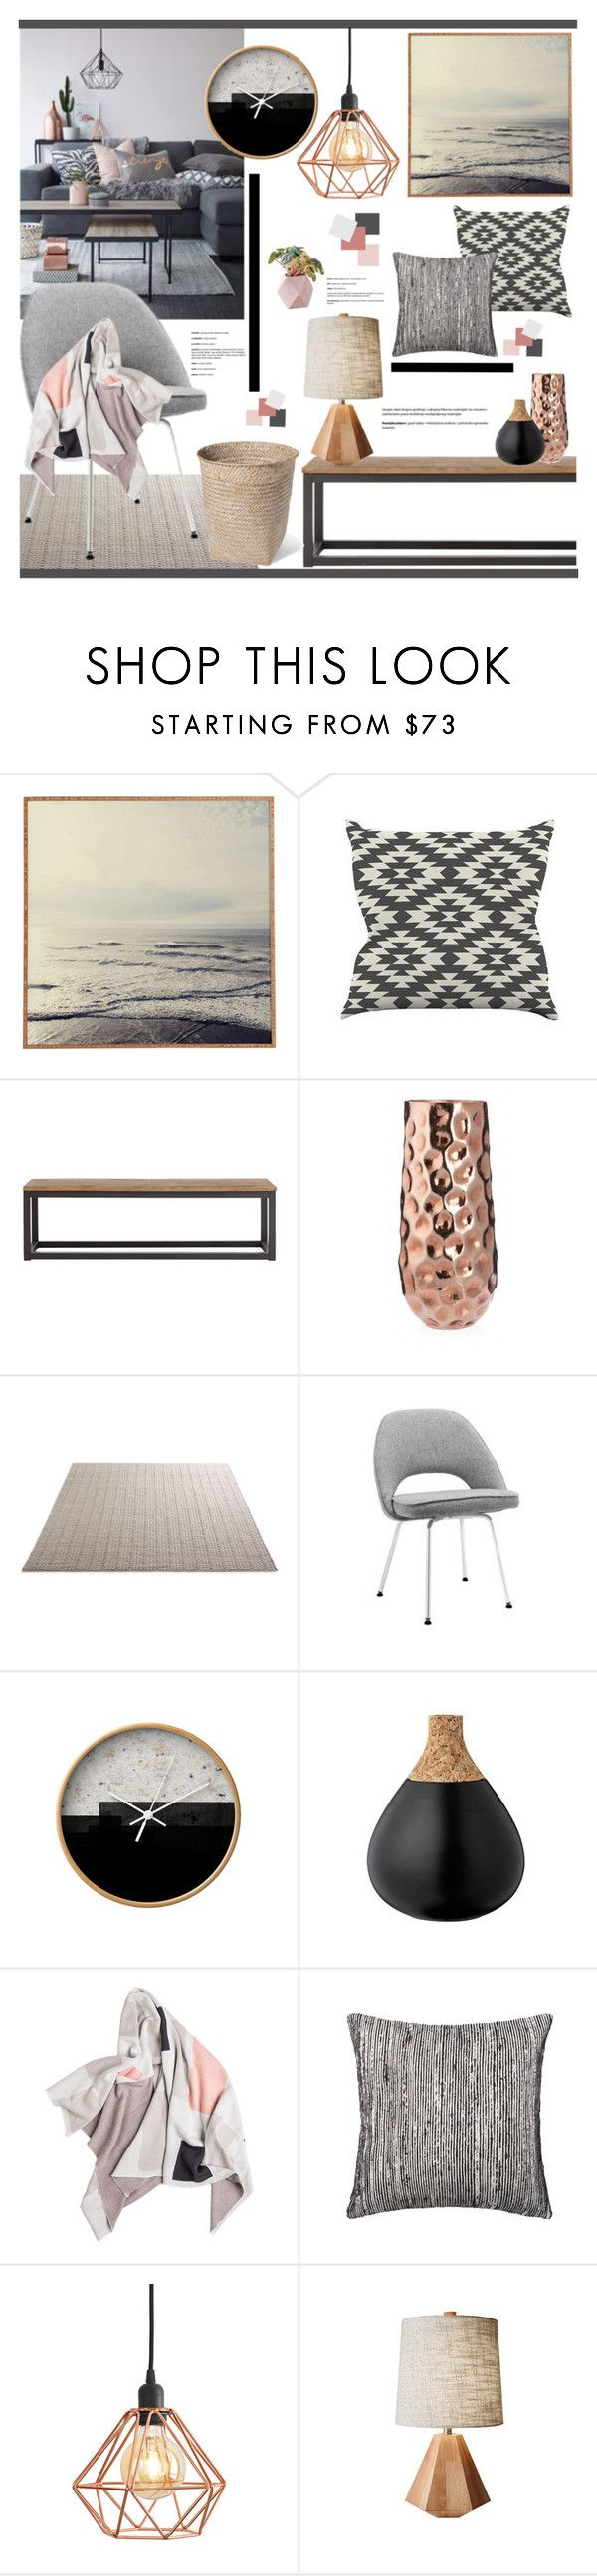 """""""Untitled #2481"""" by liliblue on Polyvore featuring interior, interiors, interior design, home, home decor, interior decorating, Lyell and Dot & Bo"""